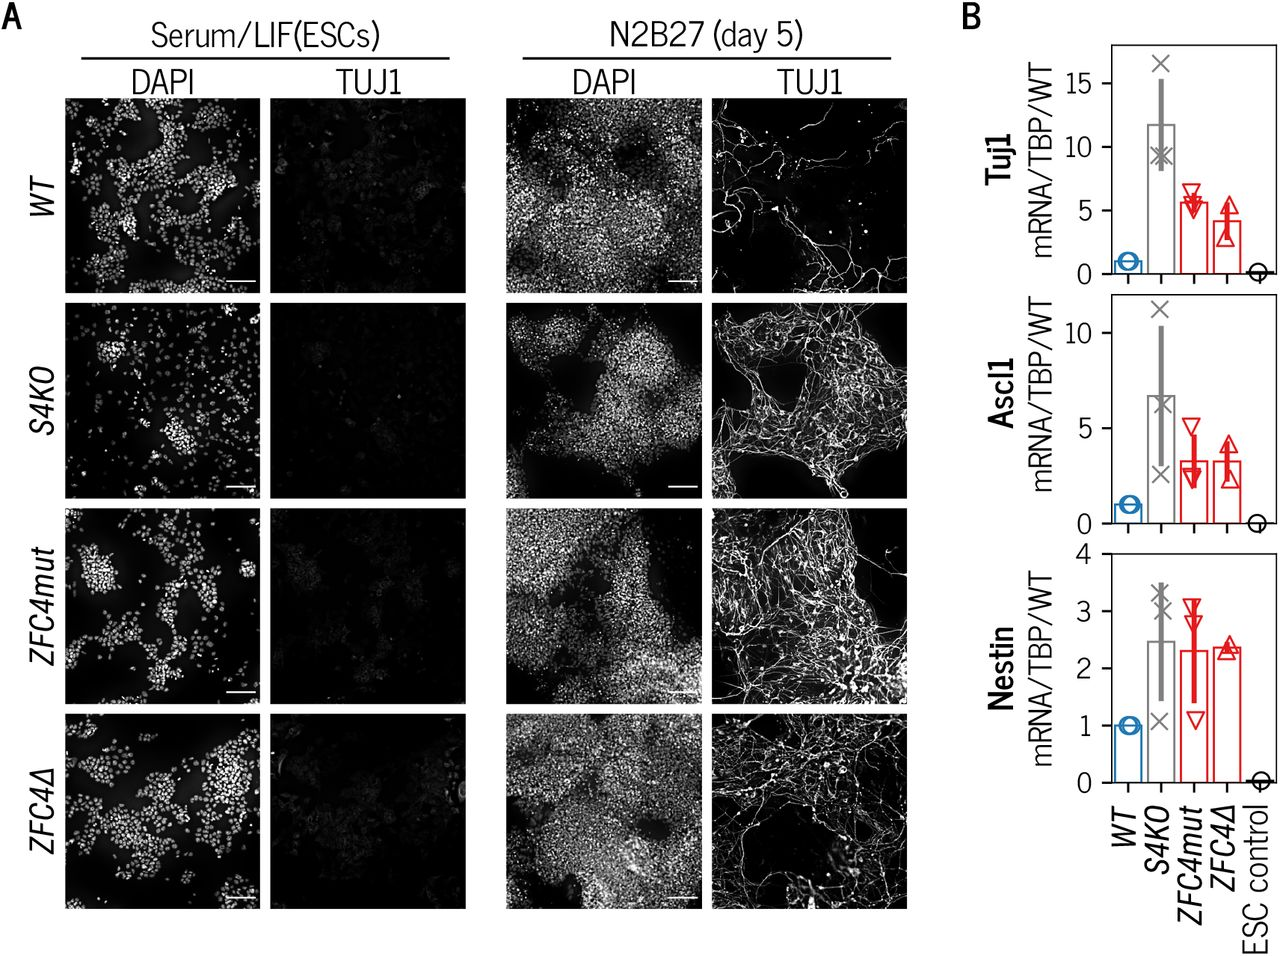 Phenotypic characterisation of SALL4 ZFC4 mutation during neuronal differentiation A. TUJ1 immunofluorescence in the indicated ESC lines cultured in serum/LIF medium, and following differentiation for 5 days in N2B27 medium. DNA was stained with DAPI. Scale bars: 100μm. B. RT-qPCR analysis of the neuronal markers Tuj1, Ascl1 and Nestin in the indicated cell lines following differentiation for 5 days in N2B27 medium. Transcripts levels were normalised to TBP and expressed relative to WT . Data points indicate independent replicate experiments and error bars standard deviation.